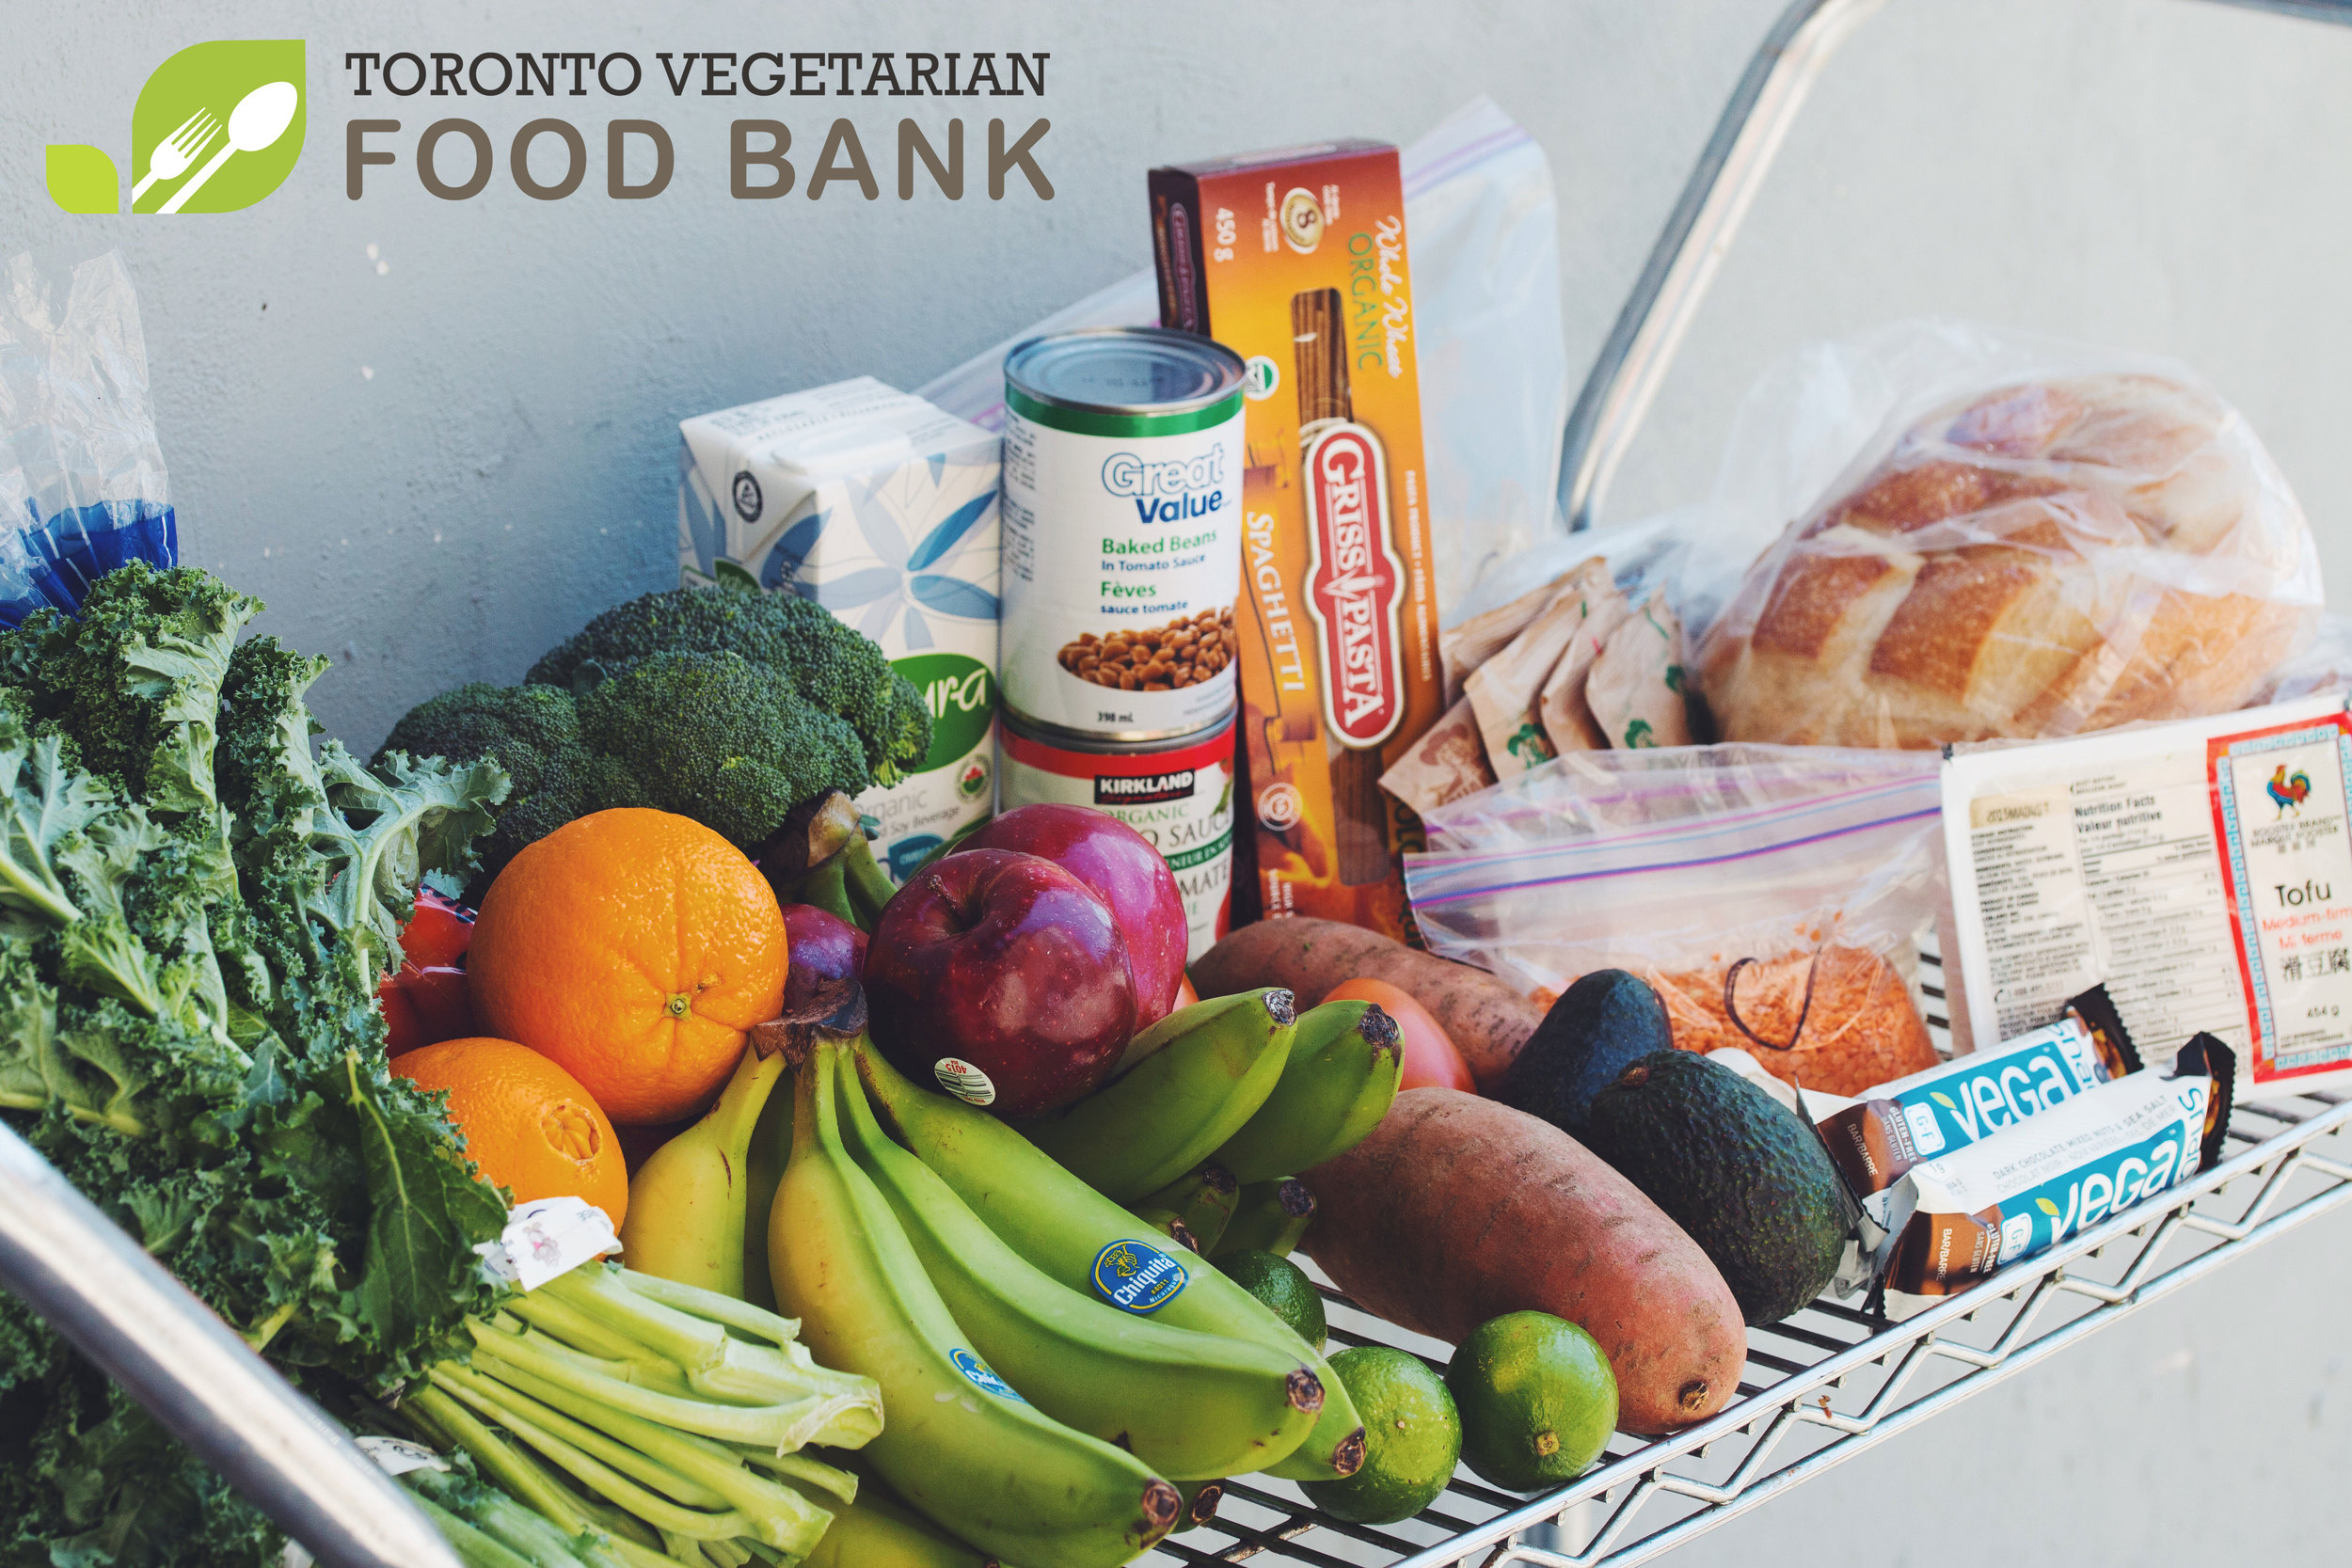 the amount of groceries a person will receive in one visit to the Toronto Vegetarian Food Bank